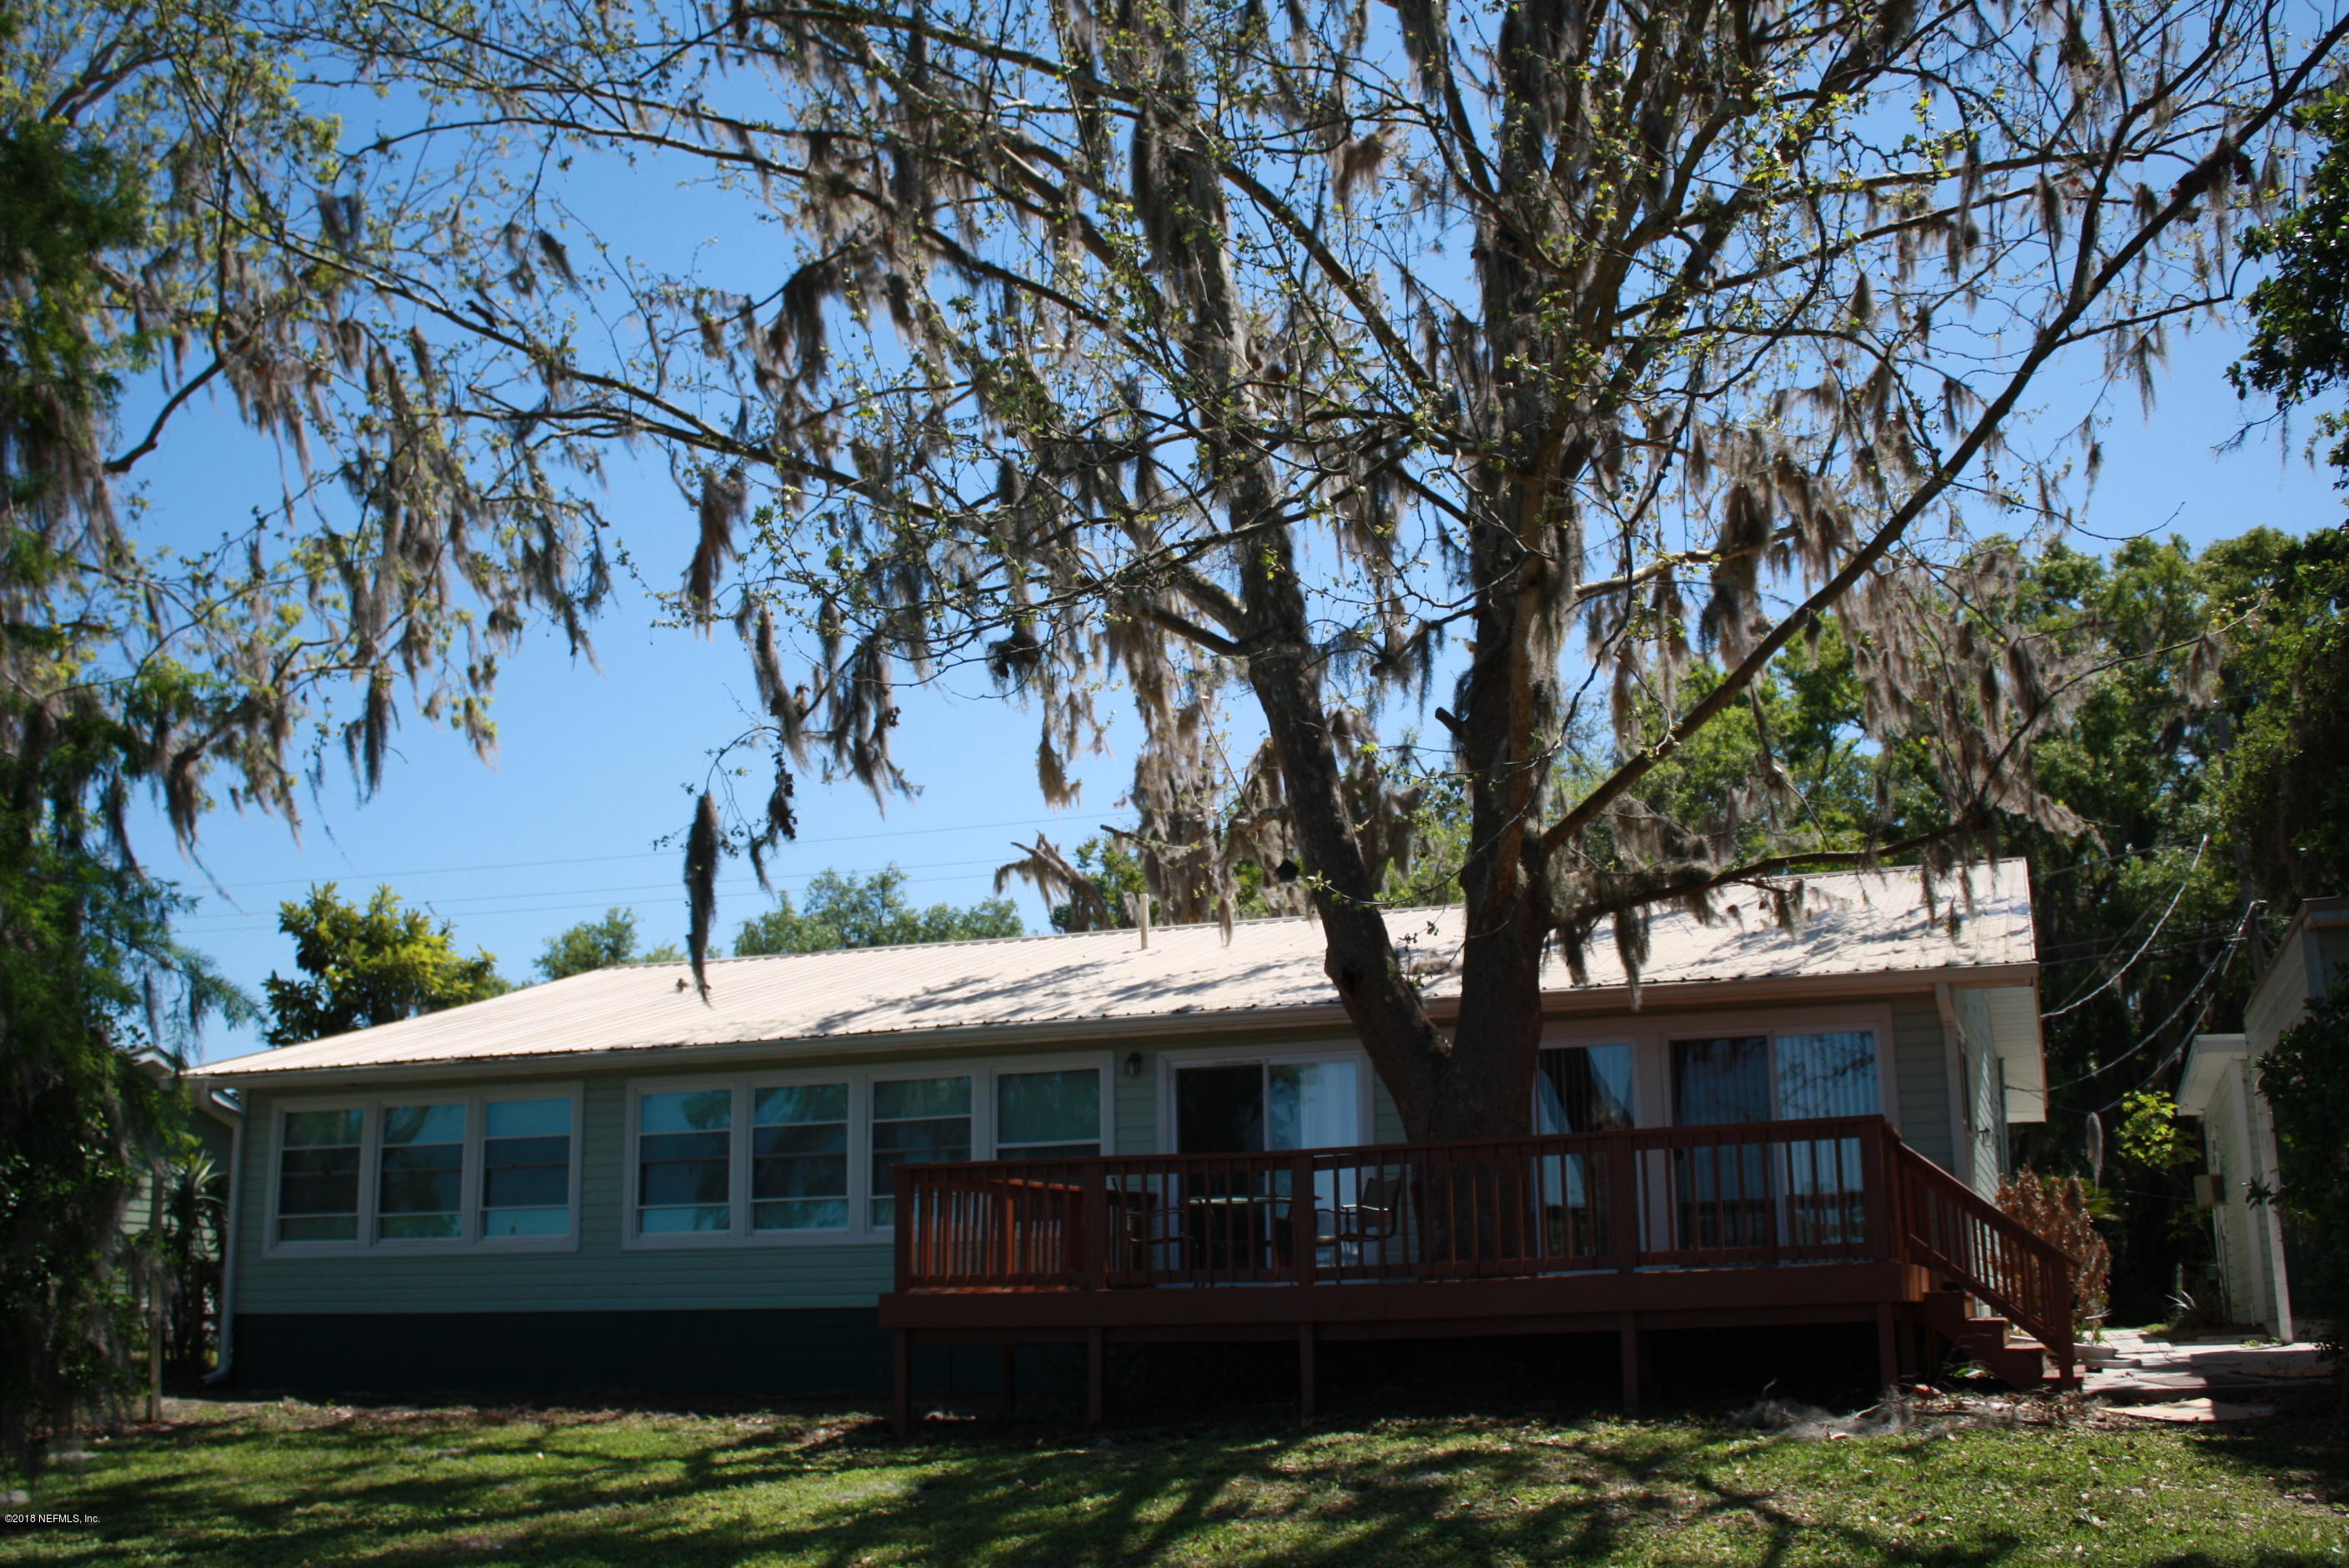 132 BEECHERS POINT, WELAKA, FLORIDA 32193, 3 Bedrooms Bedrooms, ,2 BathroomsBathrooms,Residential - single family,For sale,BEECHERS POINT,927936